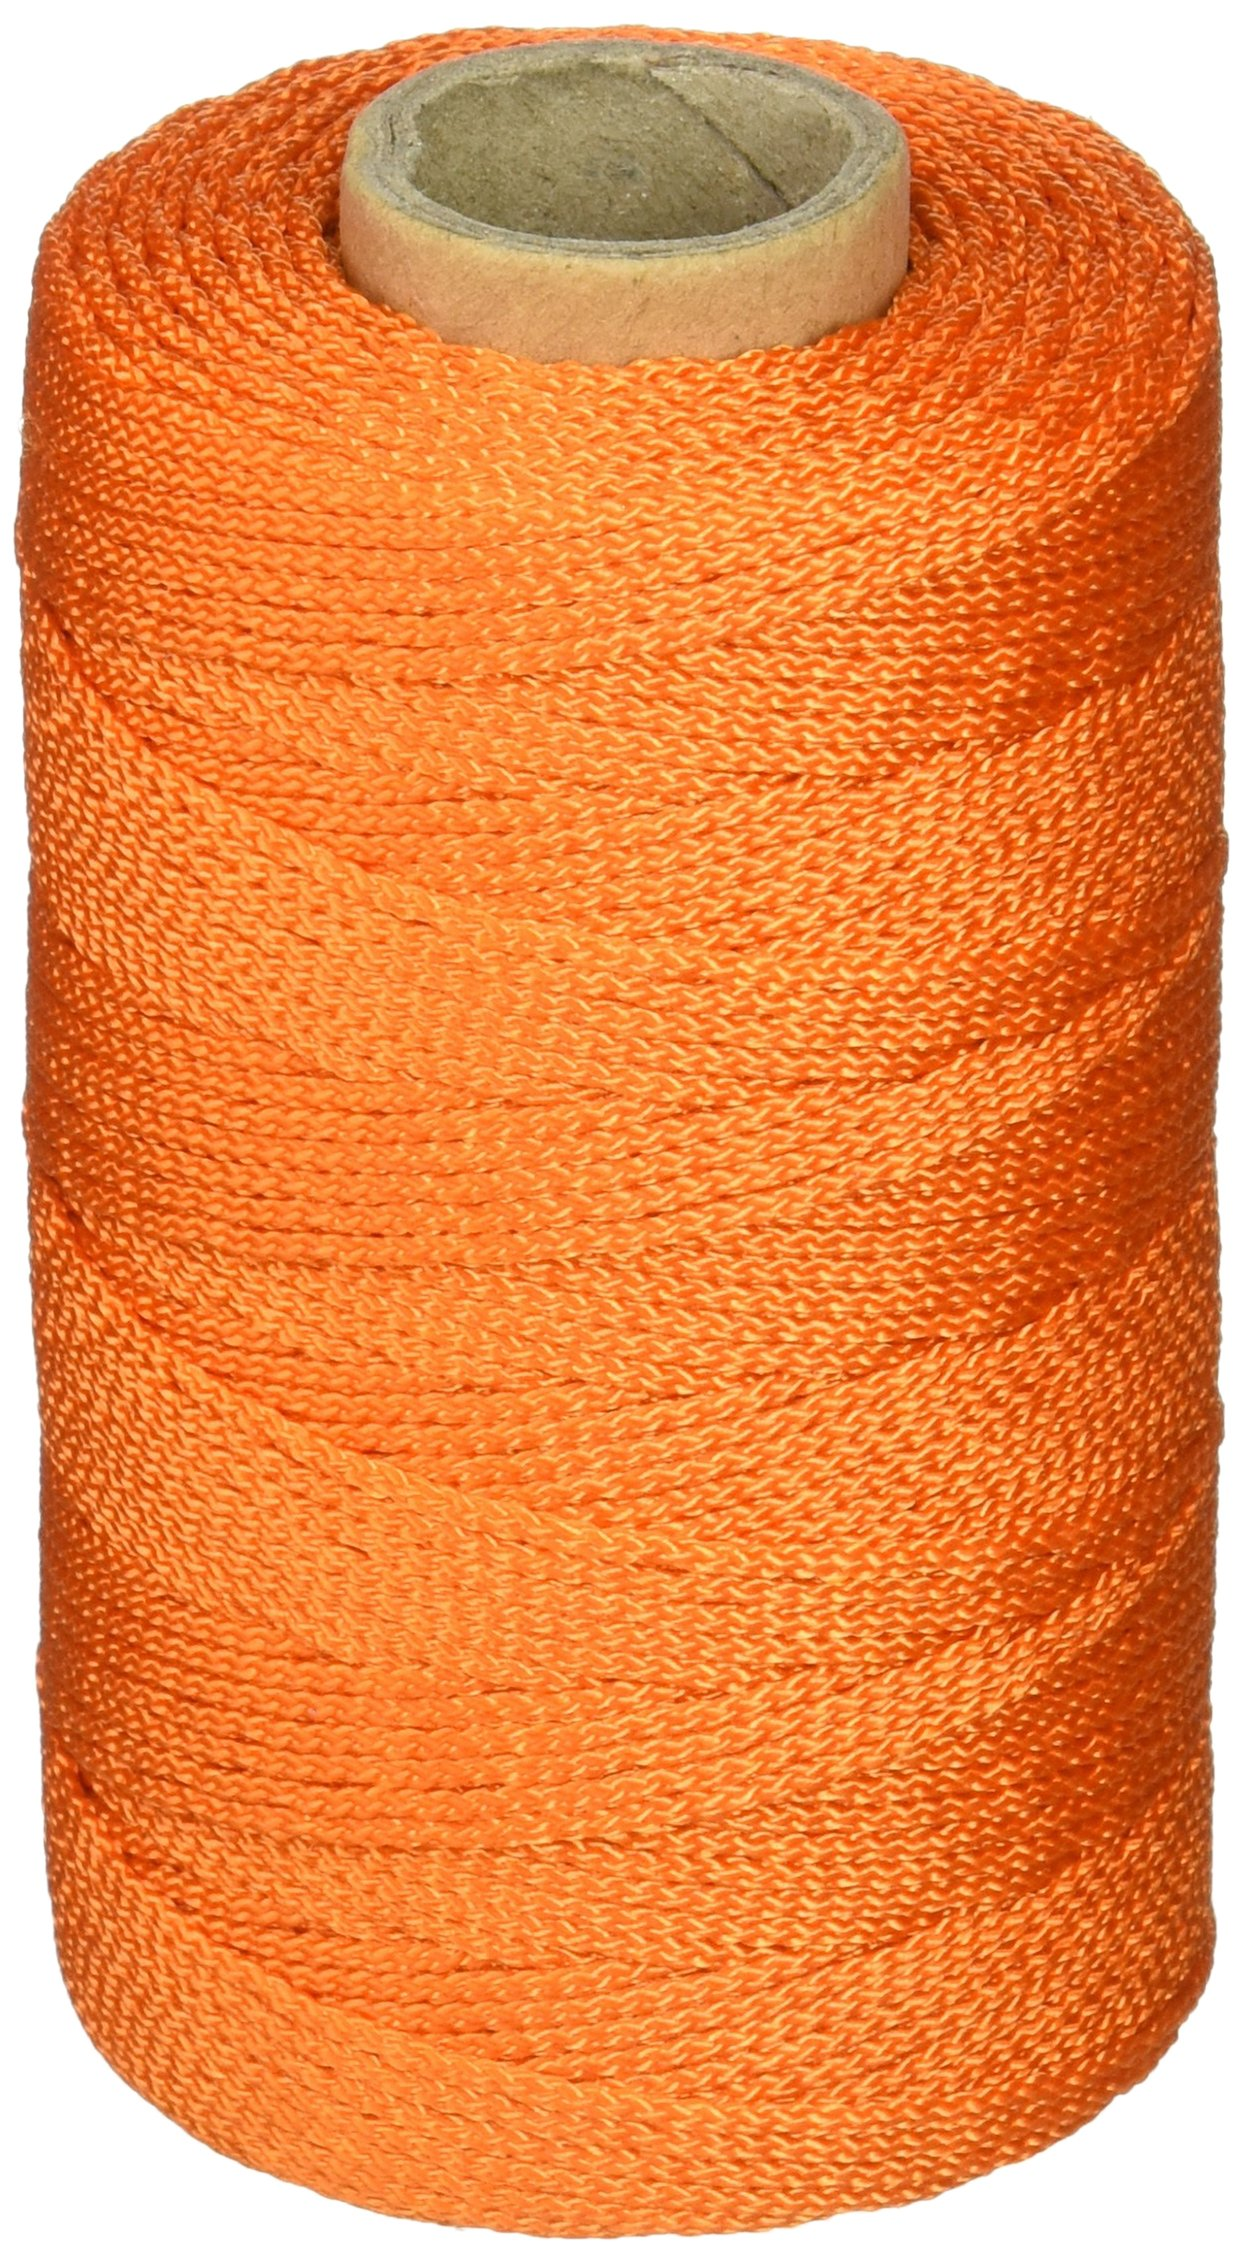 Irwin Tools 2034404 Irwin Industrial Tool Orange Mason Line - 500'